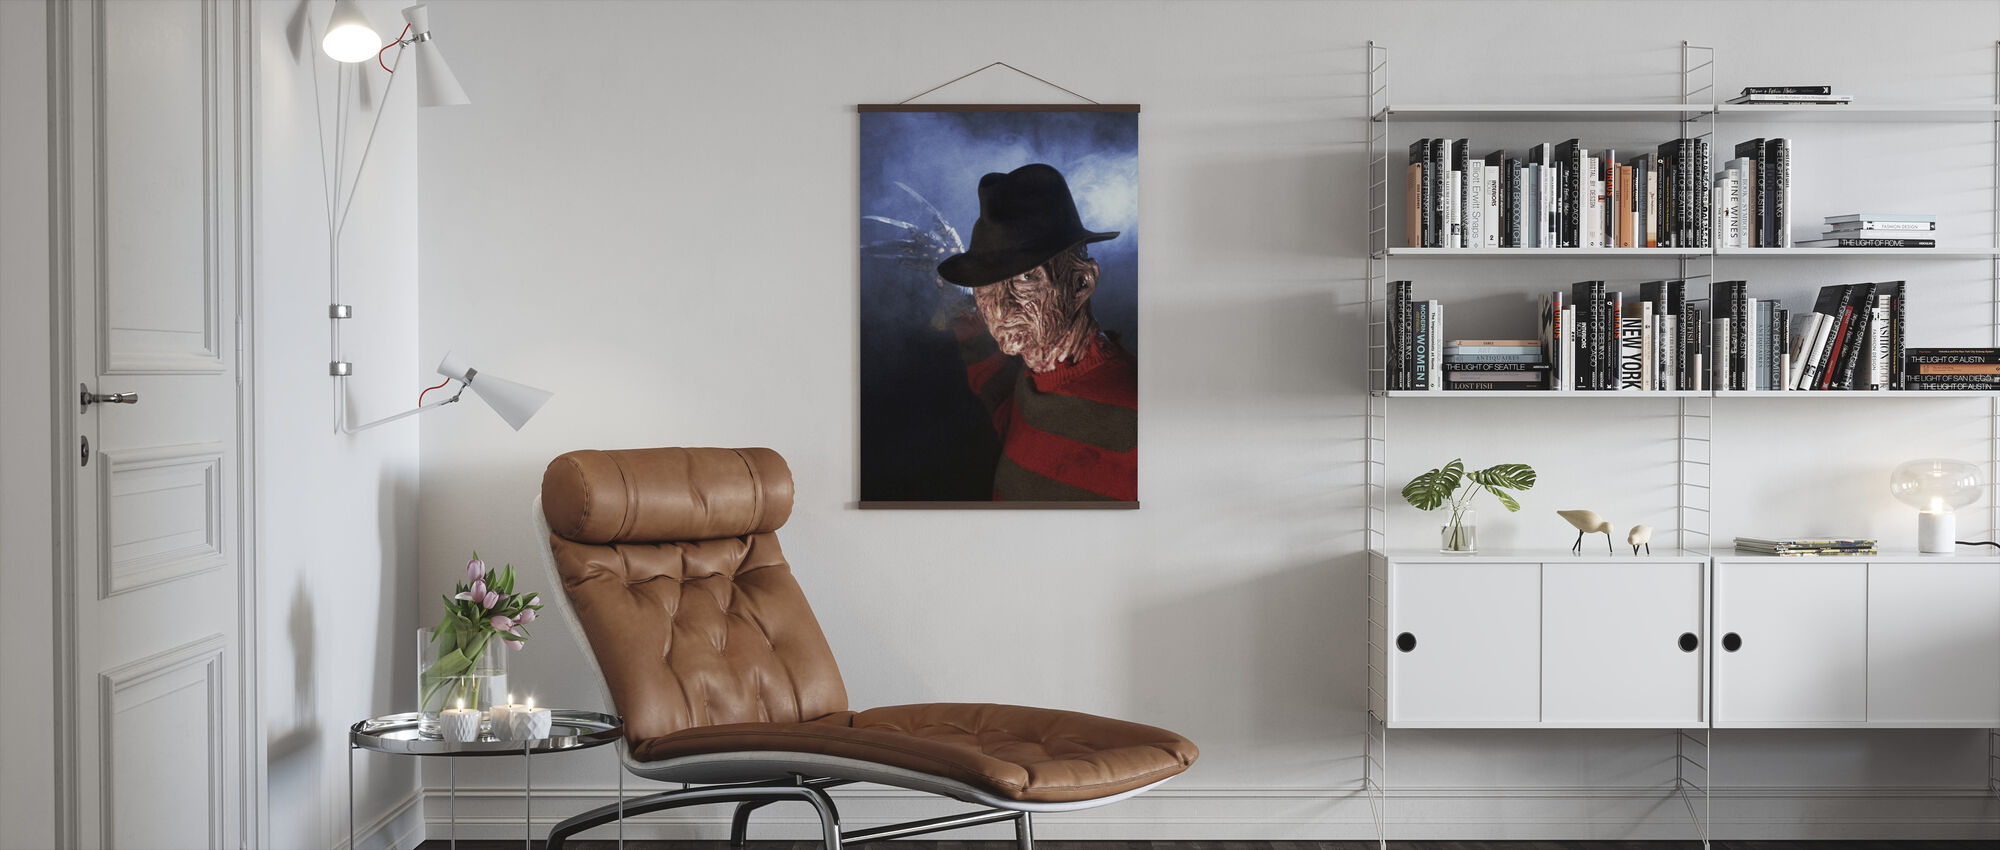 Robert Englund in a Nightmare on Elm Street - Poster - Living Room